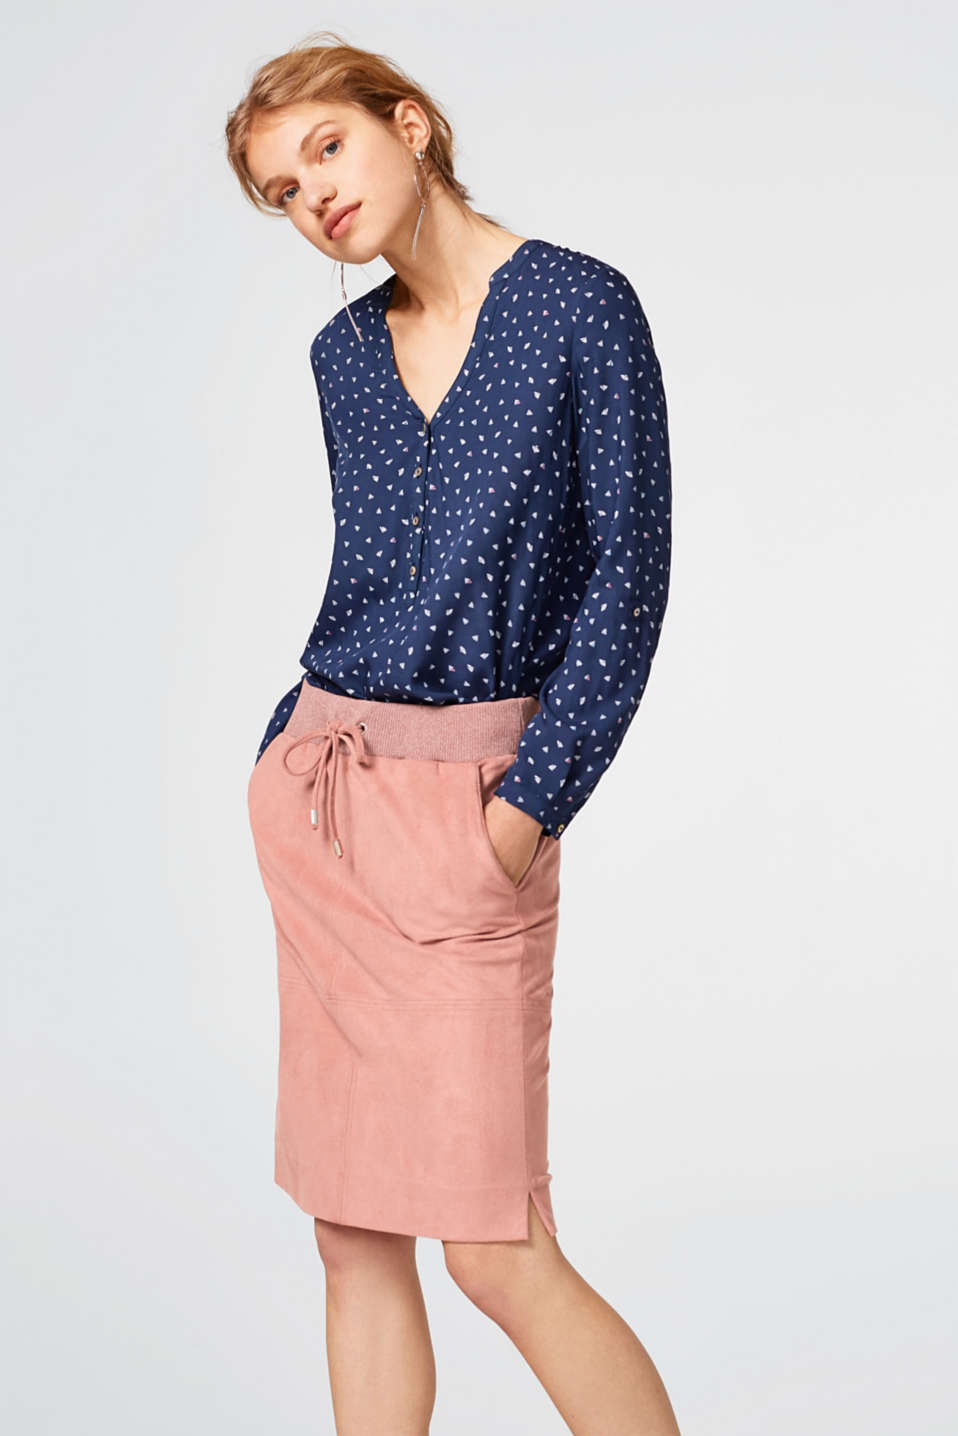 Esprit - Flowing printed blouse with turn-up sleeves